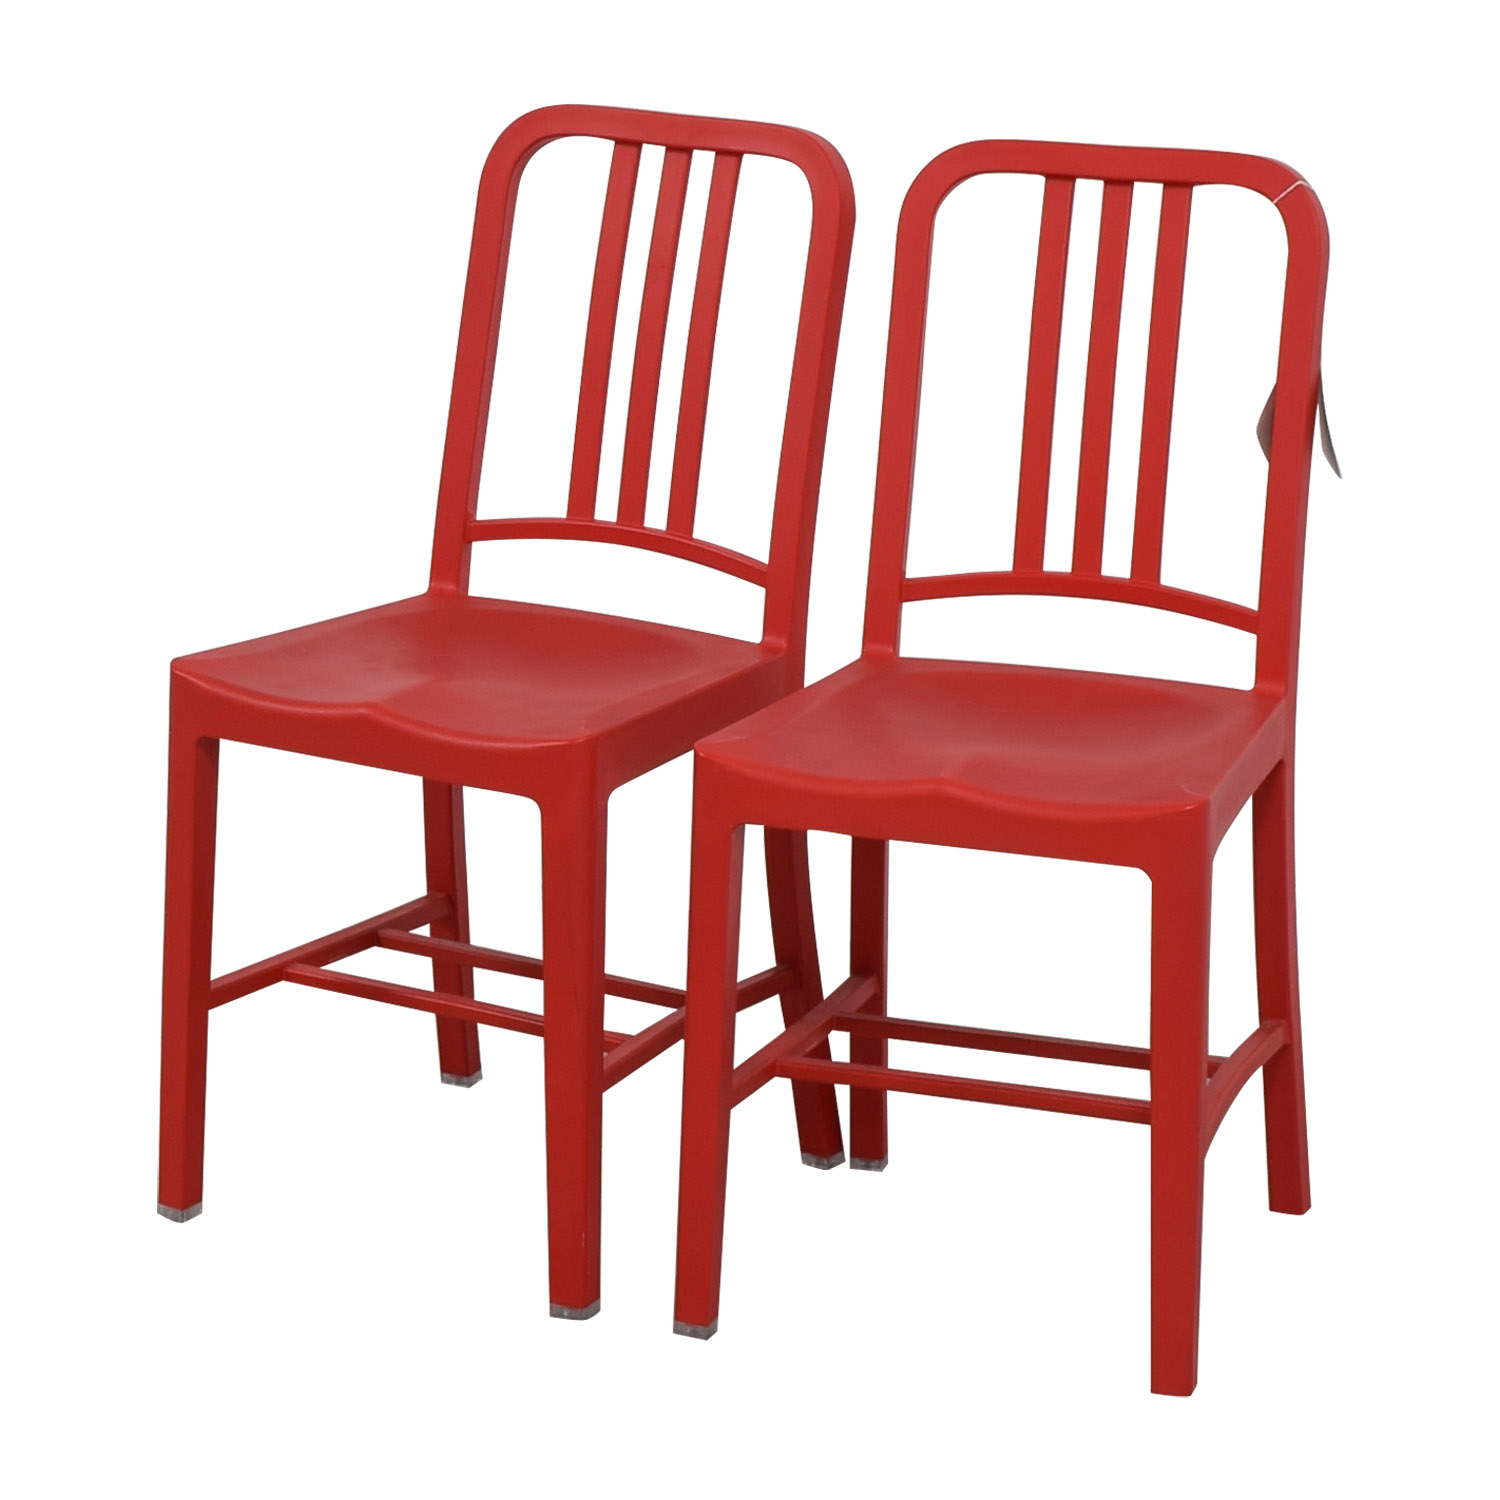 ... Shop Emeco 111 Navy Recycled Red Chairs Emeco Chairs ...